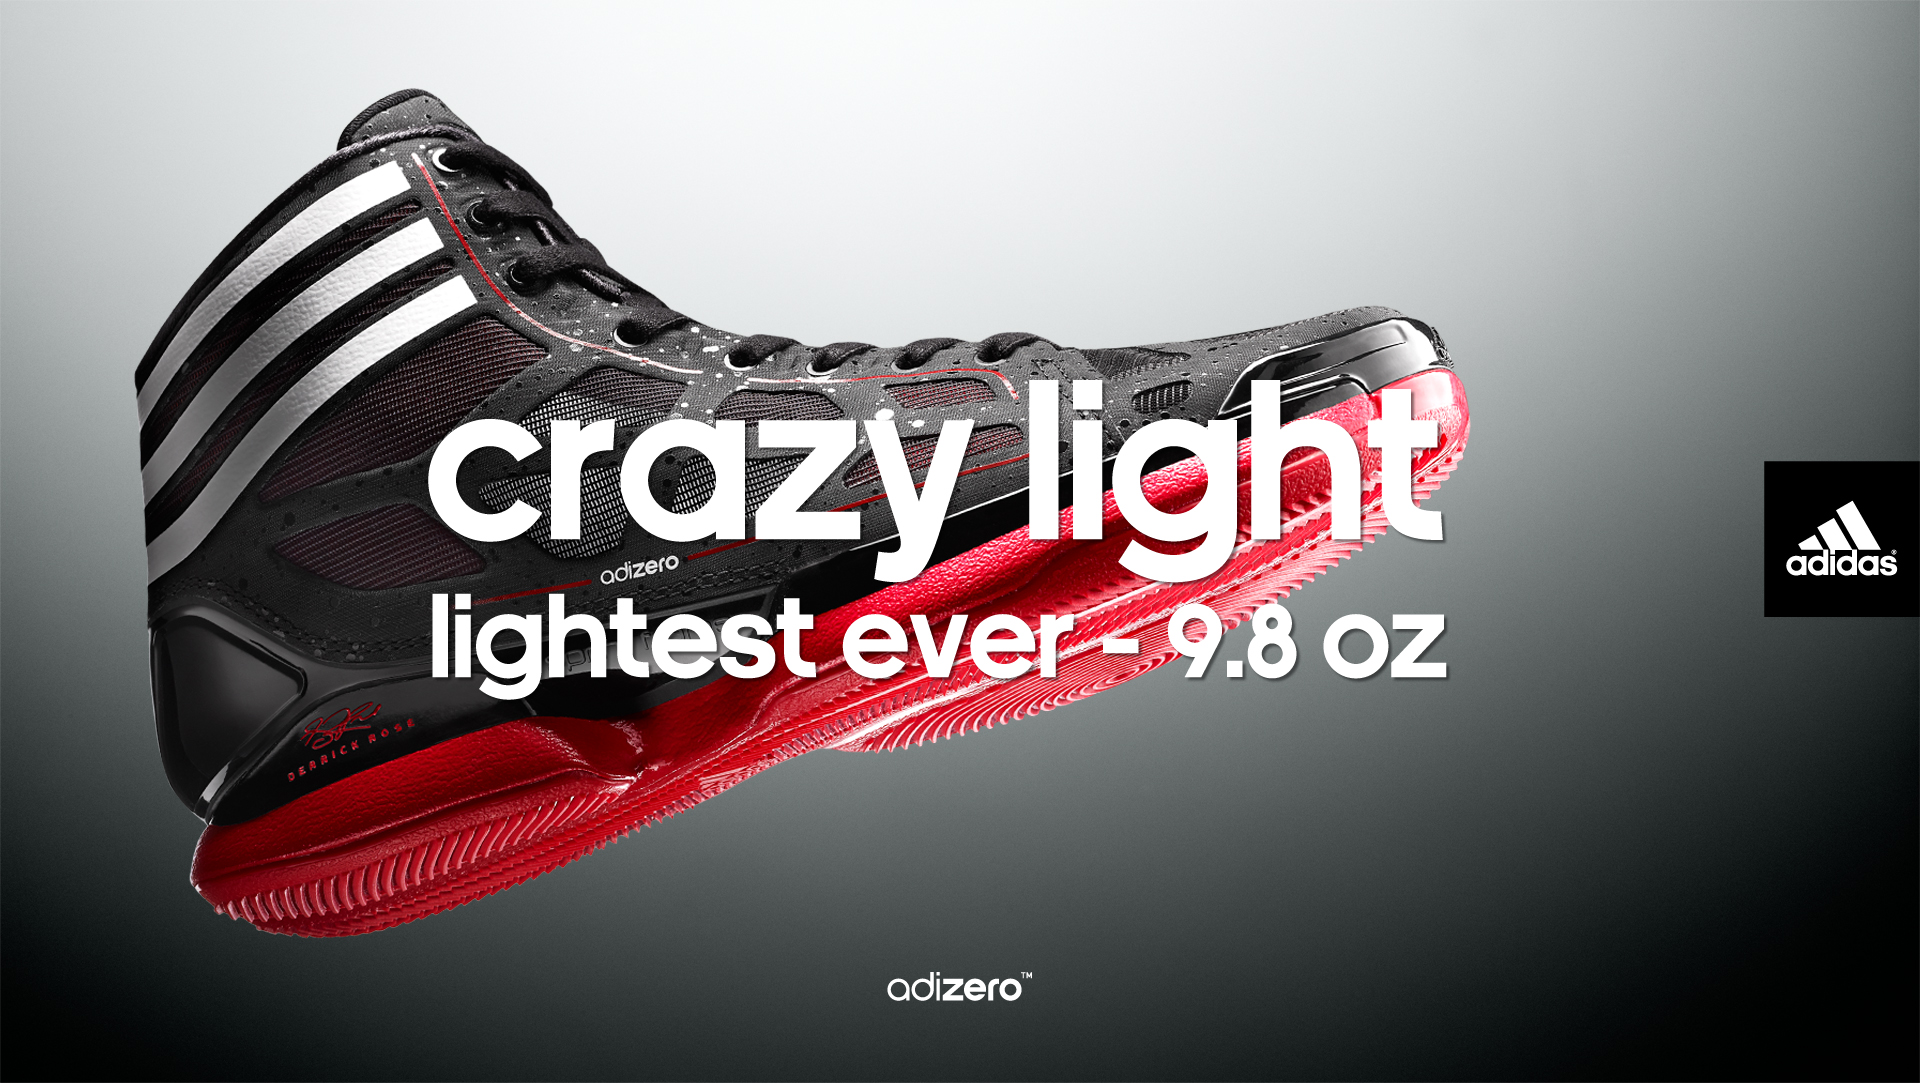 929a1f7544c1 adidas adiZero Crazy Light - Derrick Rose Wallpaper 1920 x 1083